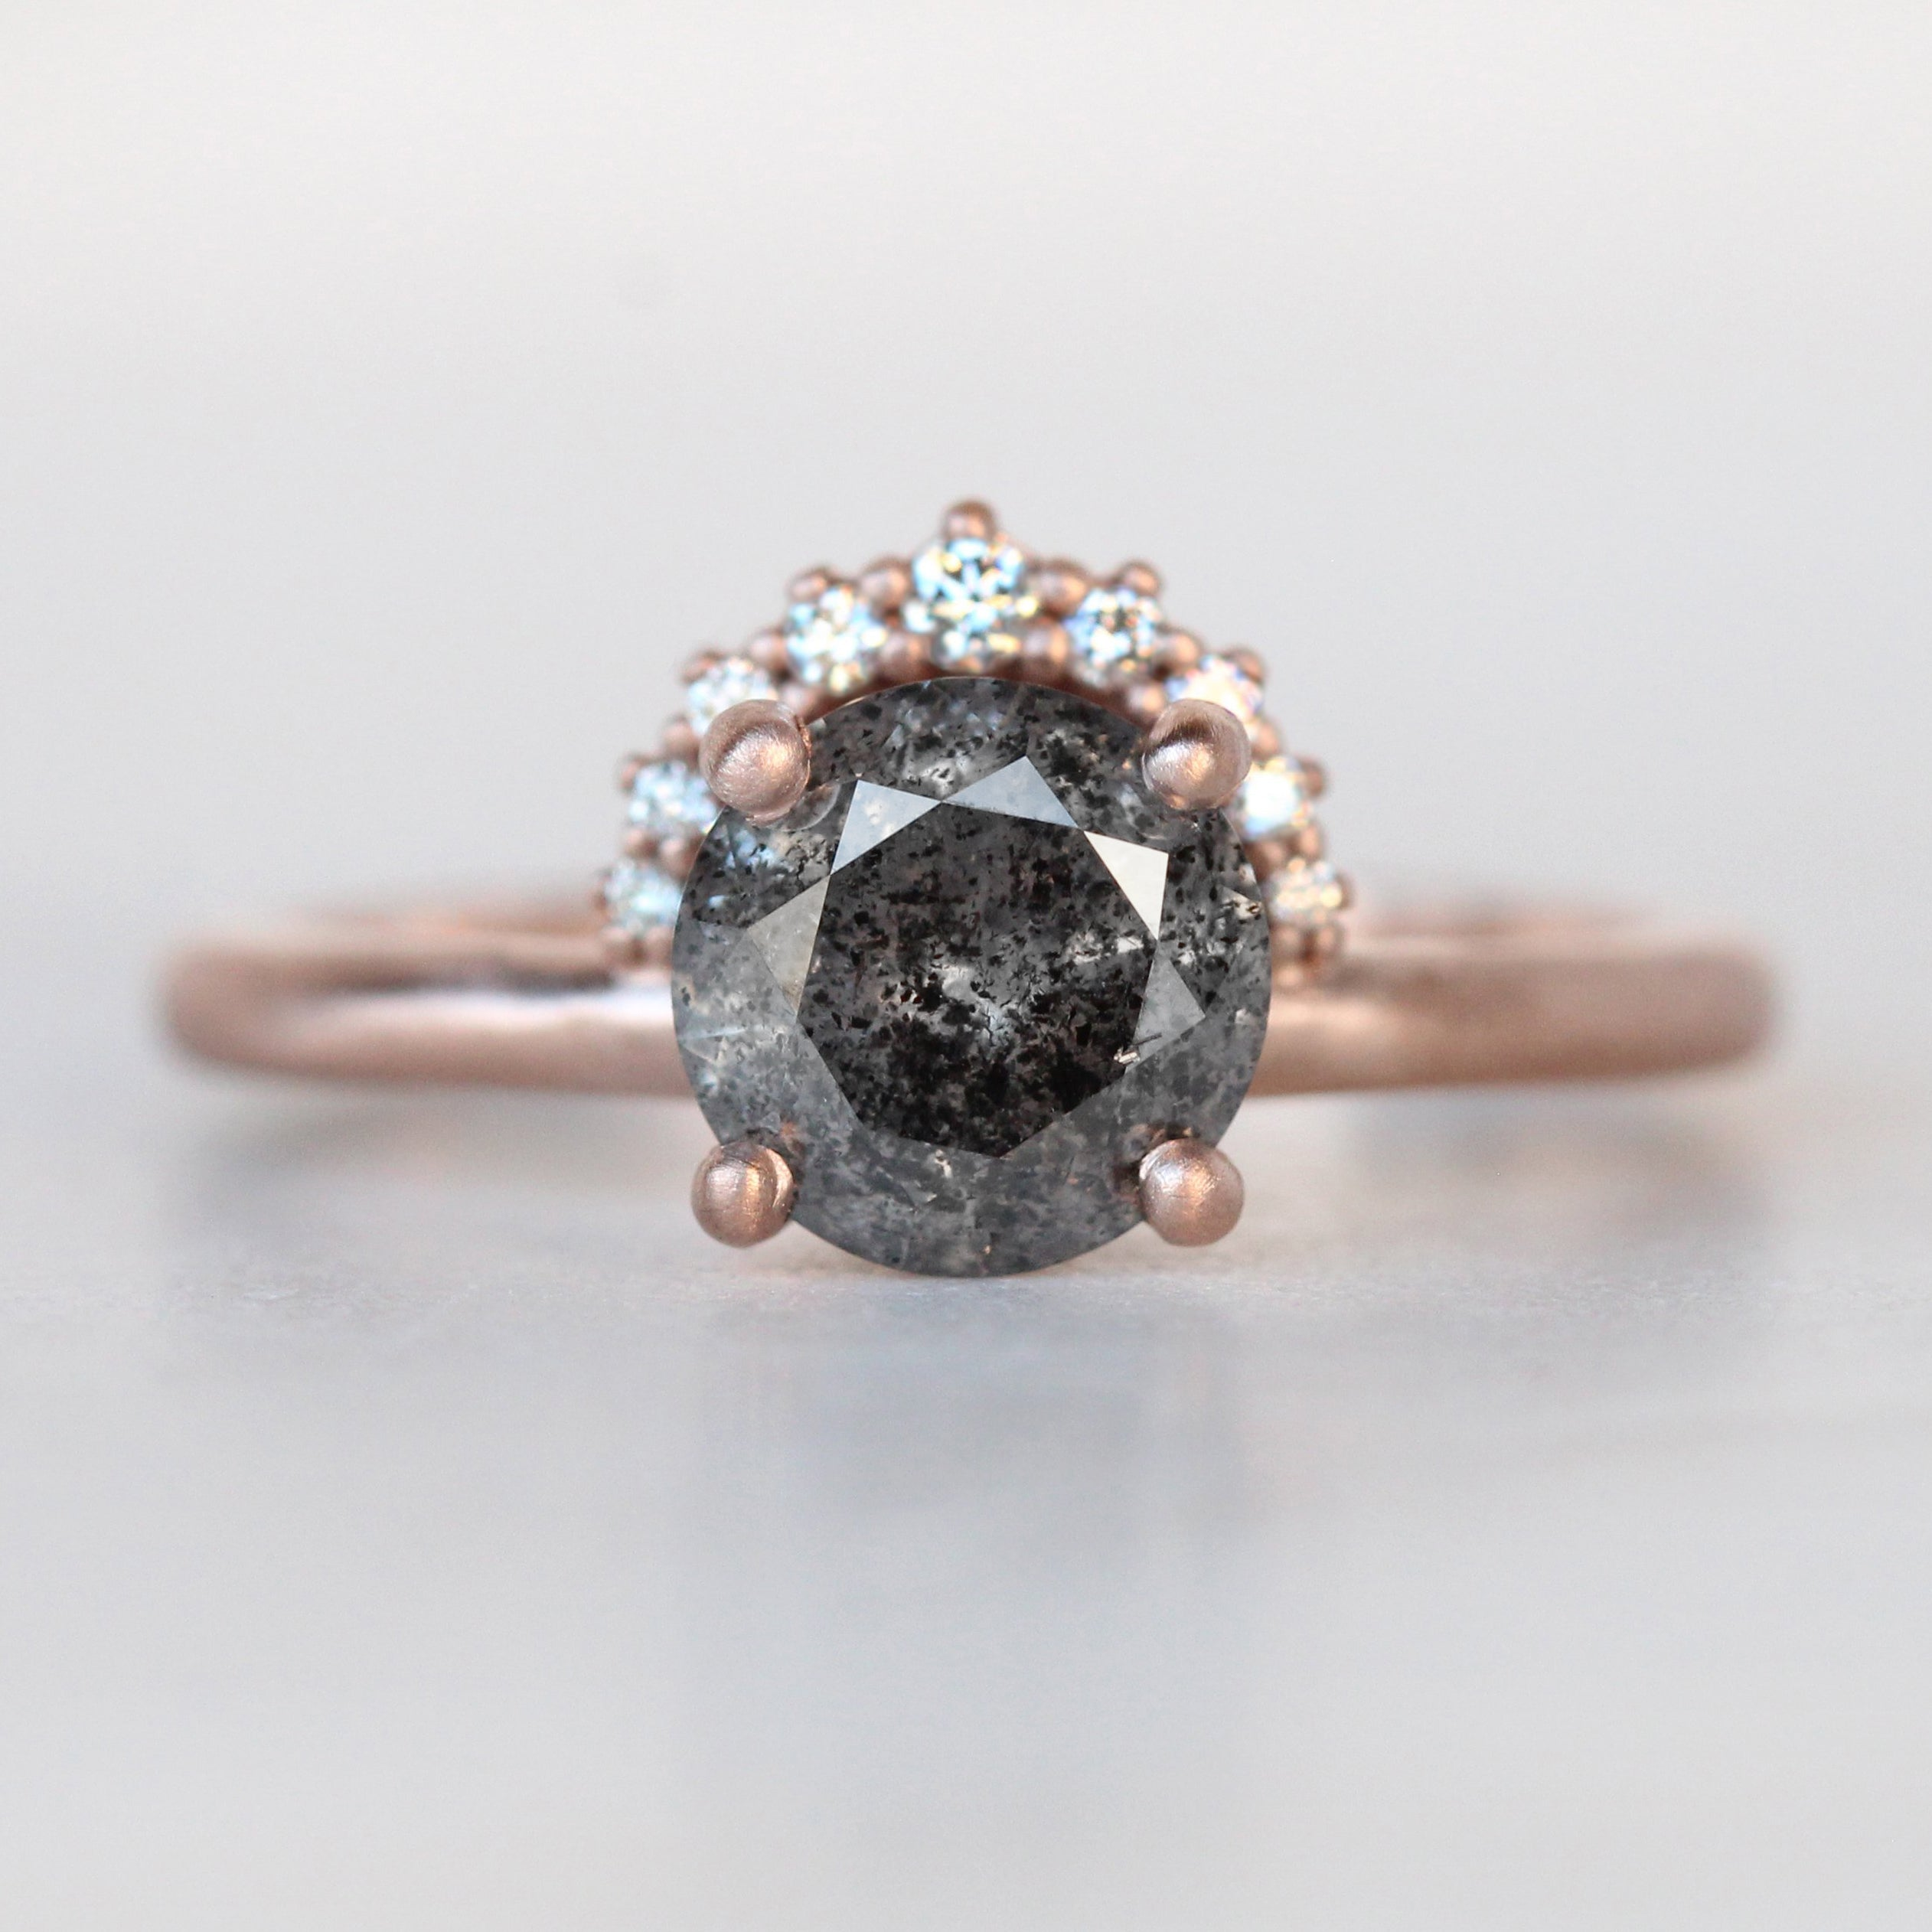 Lonnie Ring with a 1.52 Carat Celestial Diamond and a Half Halo Accent in 10k Brushed Rose Gold - Ready to Size and Ship - Midwinter Co. Alternative Bridal Rings and Modern Fine Jewelry